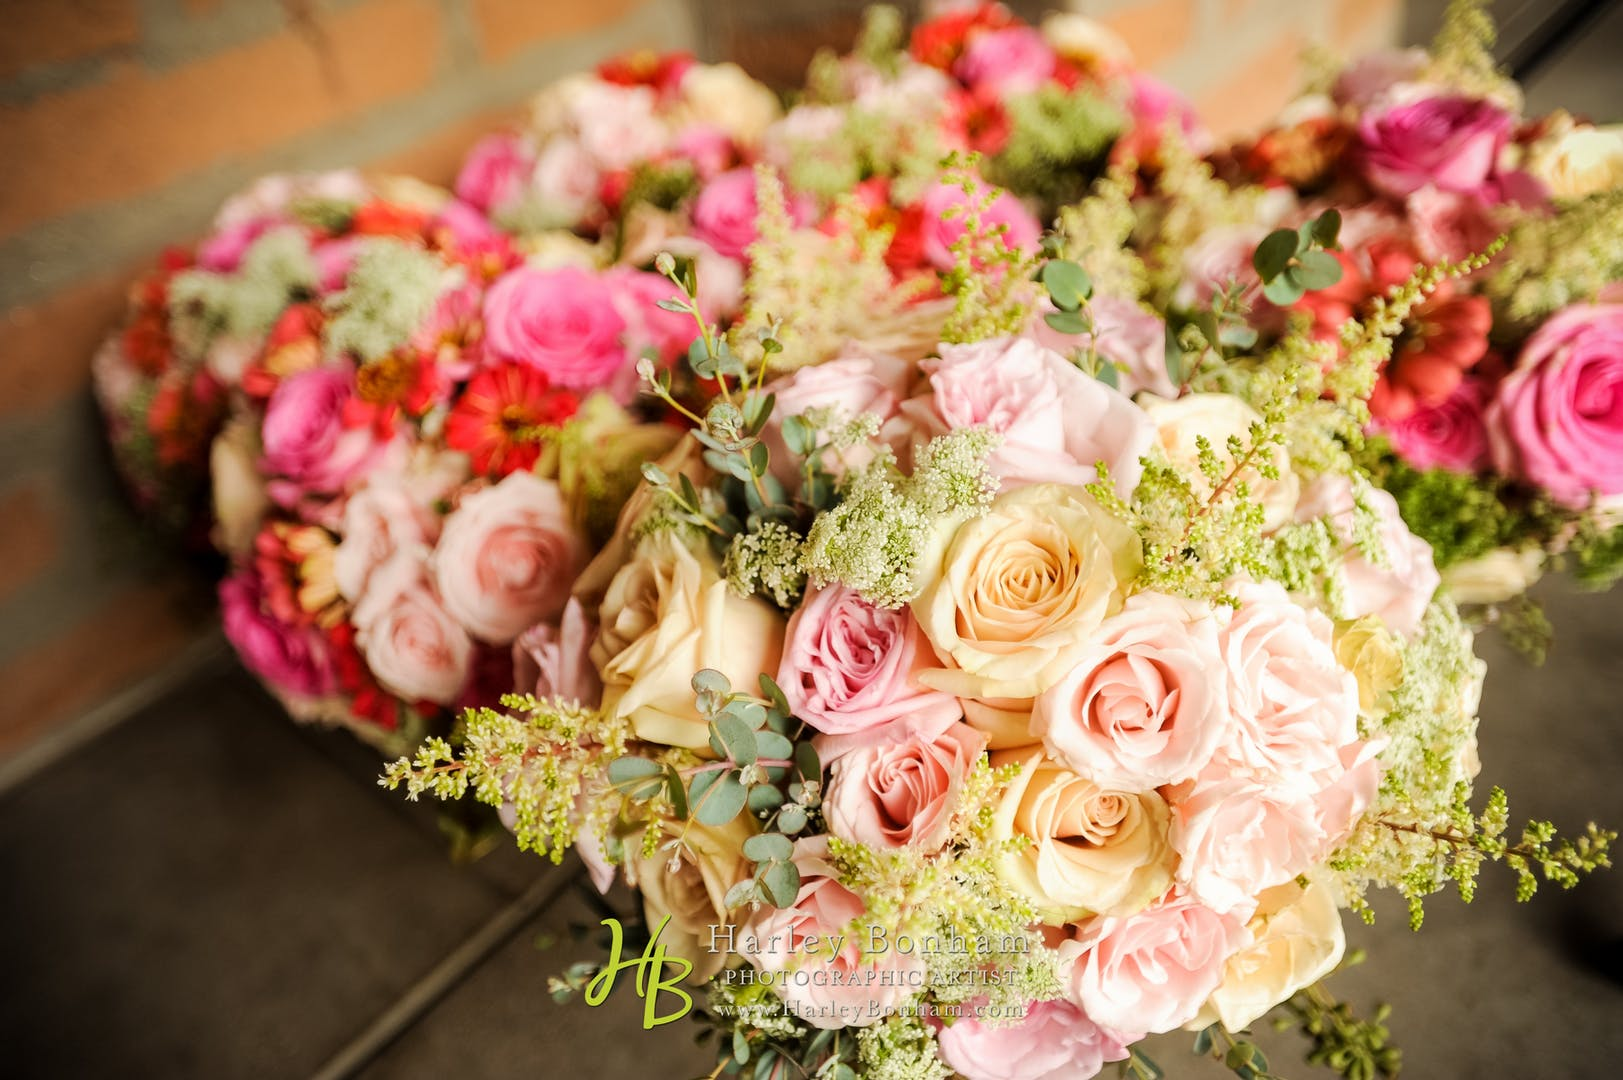 Bouquets of pink and yellow roses, splashed with sprigs of greenery.